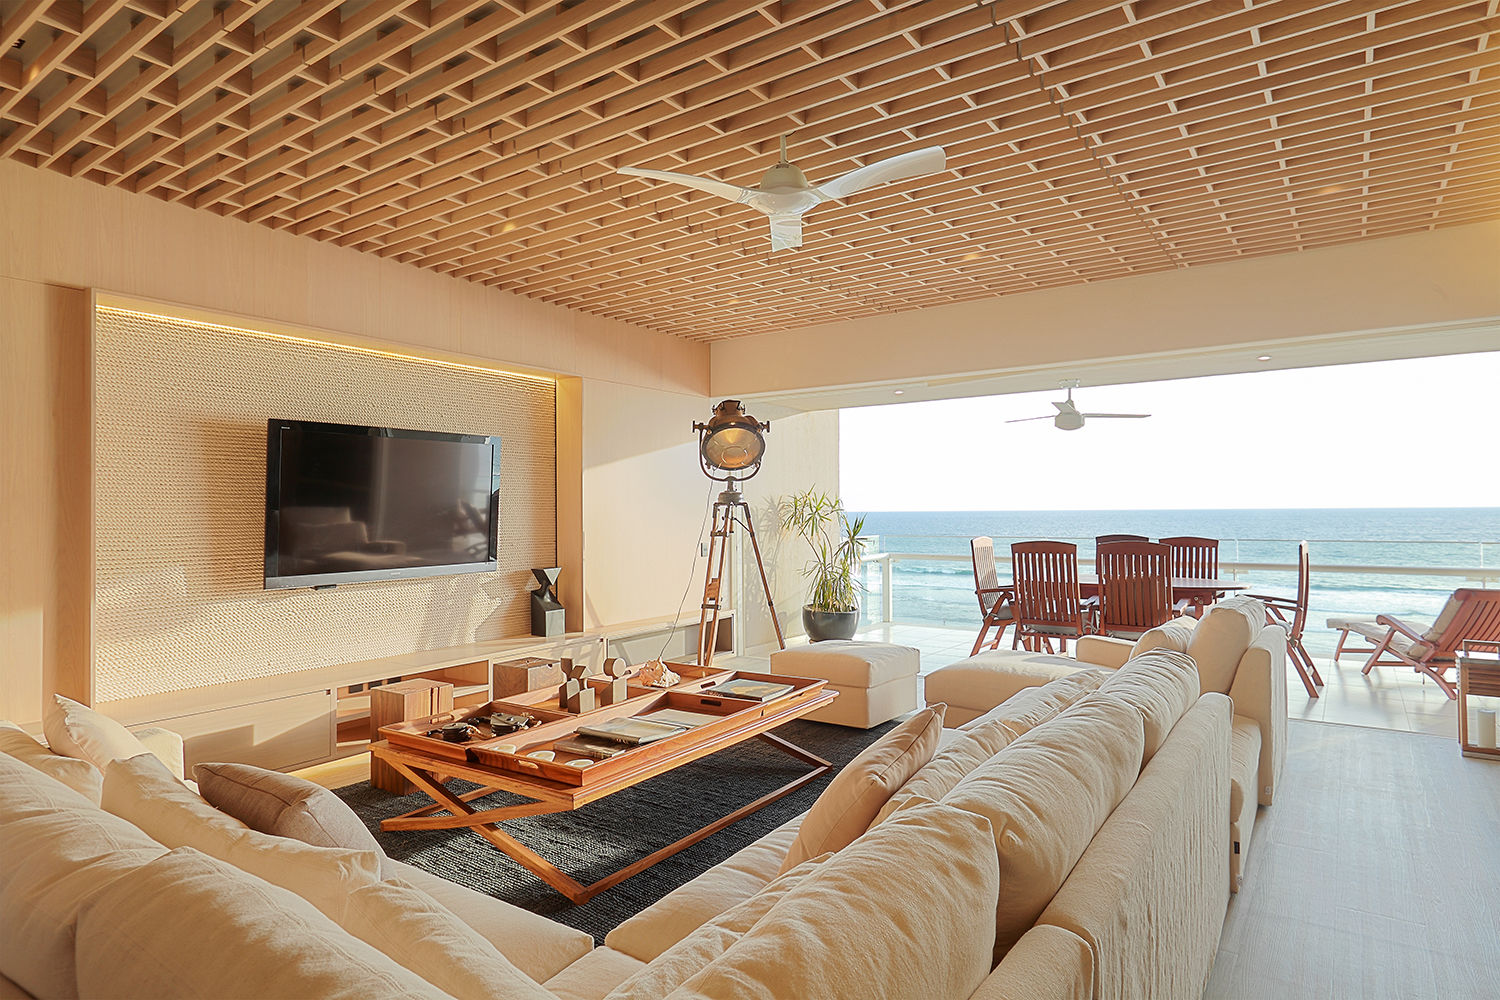 The predominant element of the intervention is a lattice that covers the entire living room ceiling, creating a canopy sensation that opens towards the ocean.